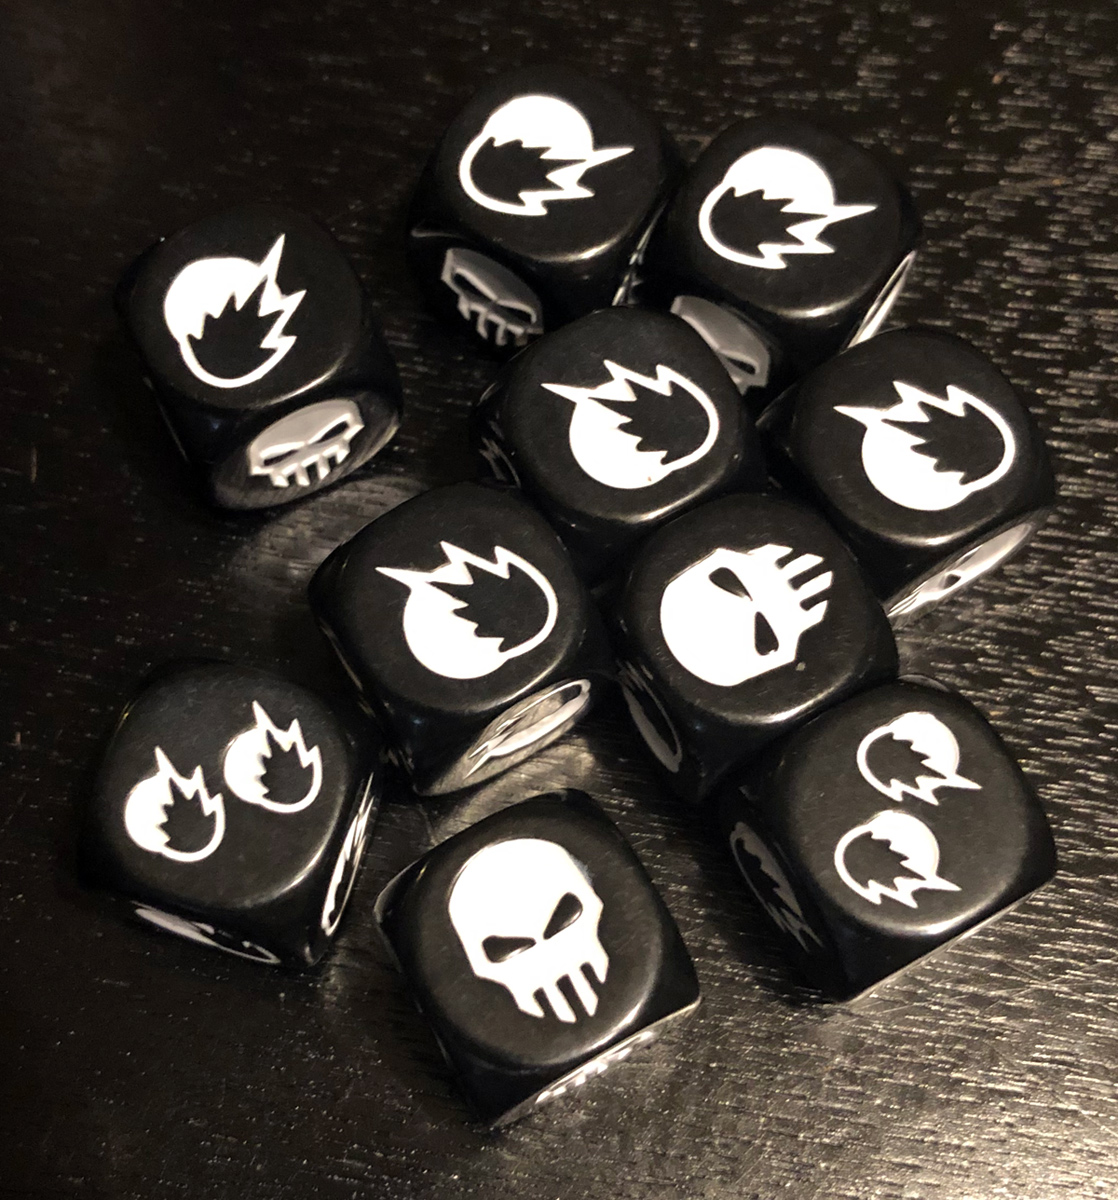 Close-up image of 10 black combat dice. The die faces feature a skull, one explosion, or two explosions in white.